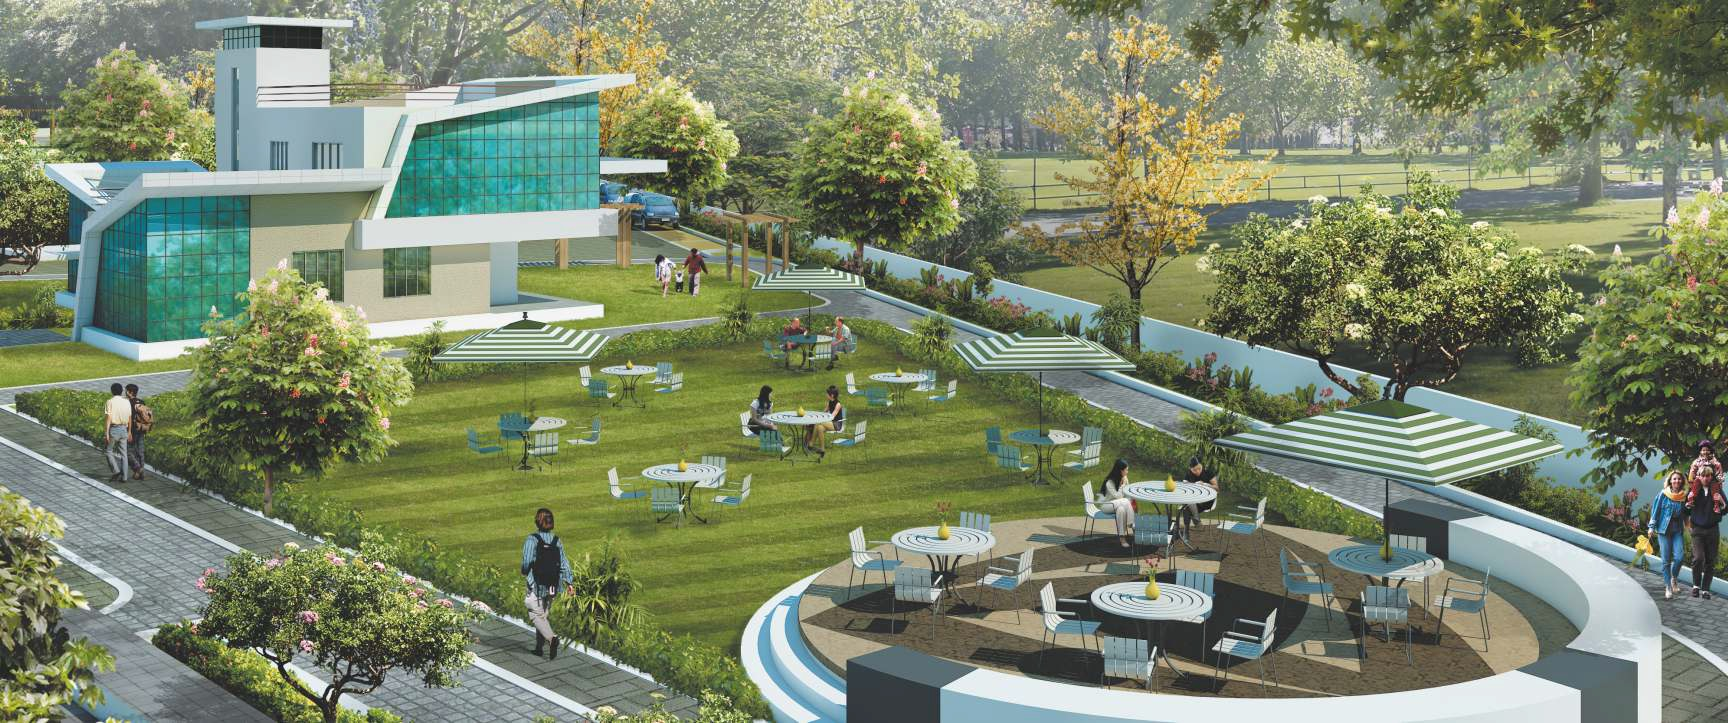 sukhwani scarlet project amenities features4